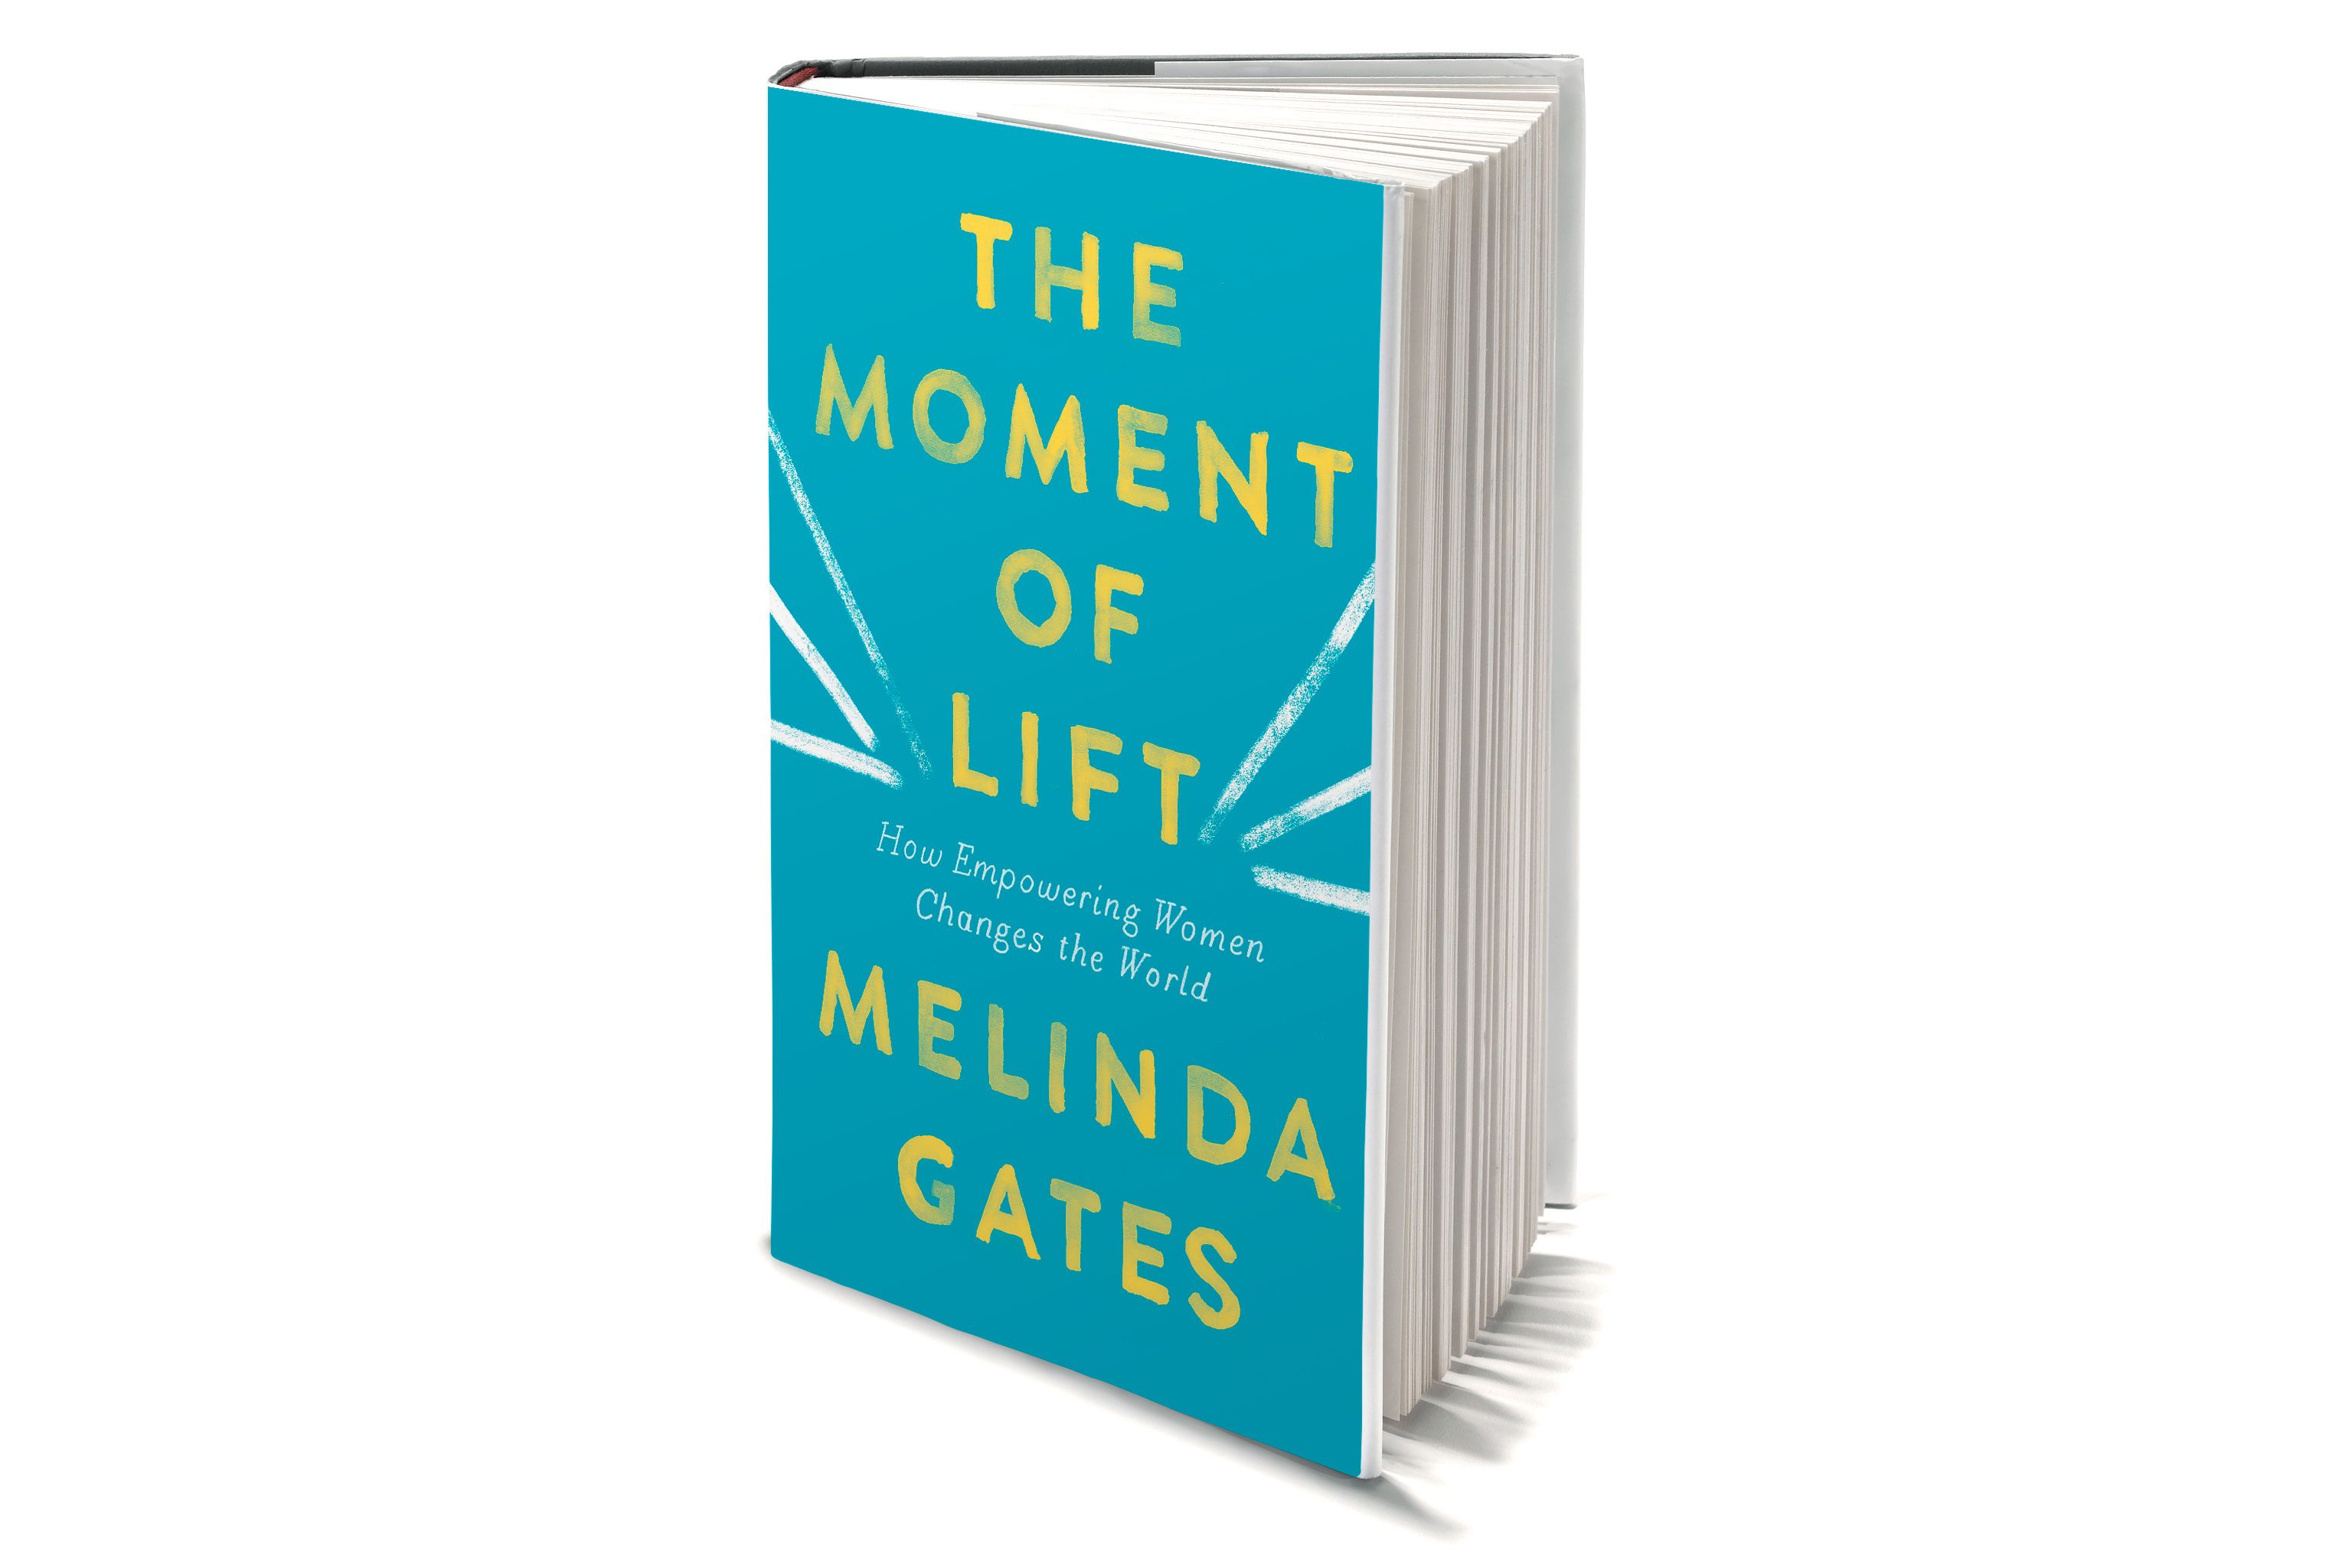 How Bill and Melinda Gates Are Transforming Life for